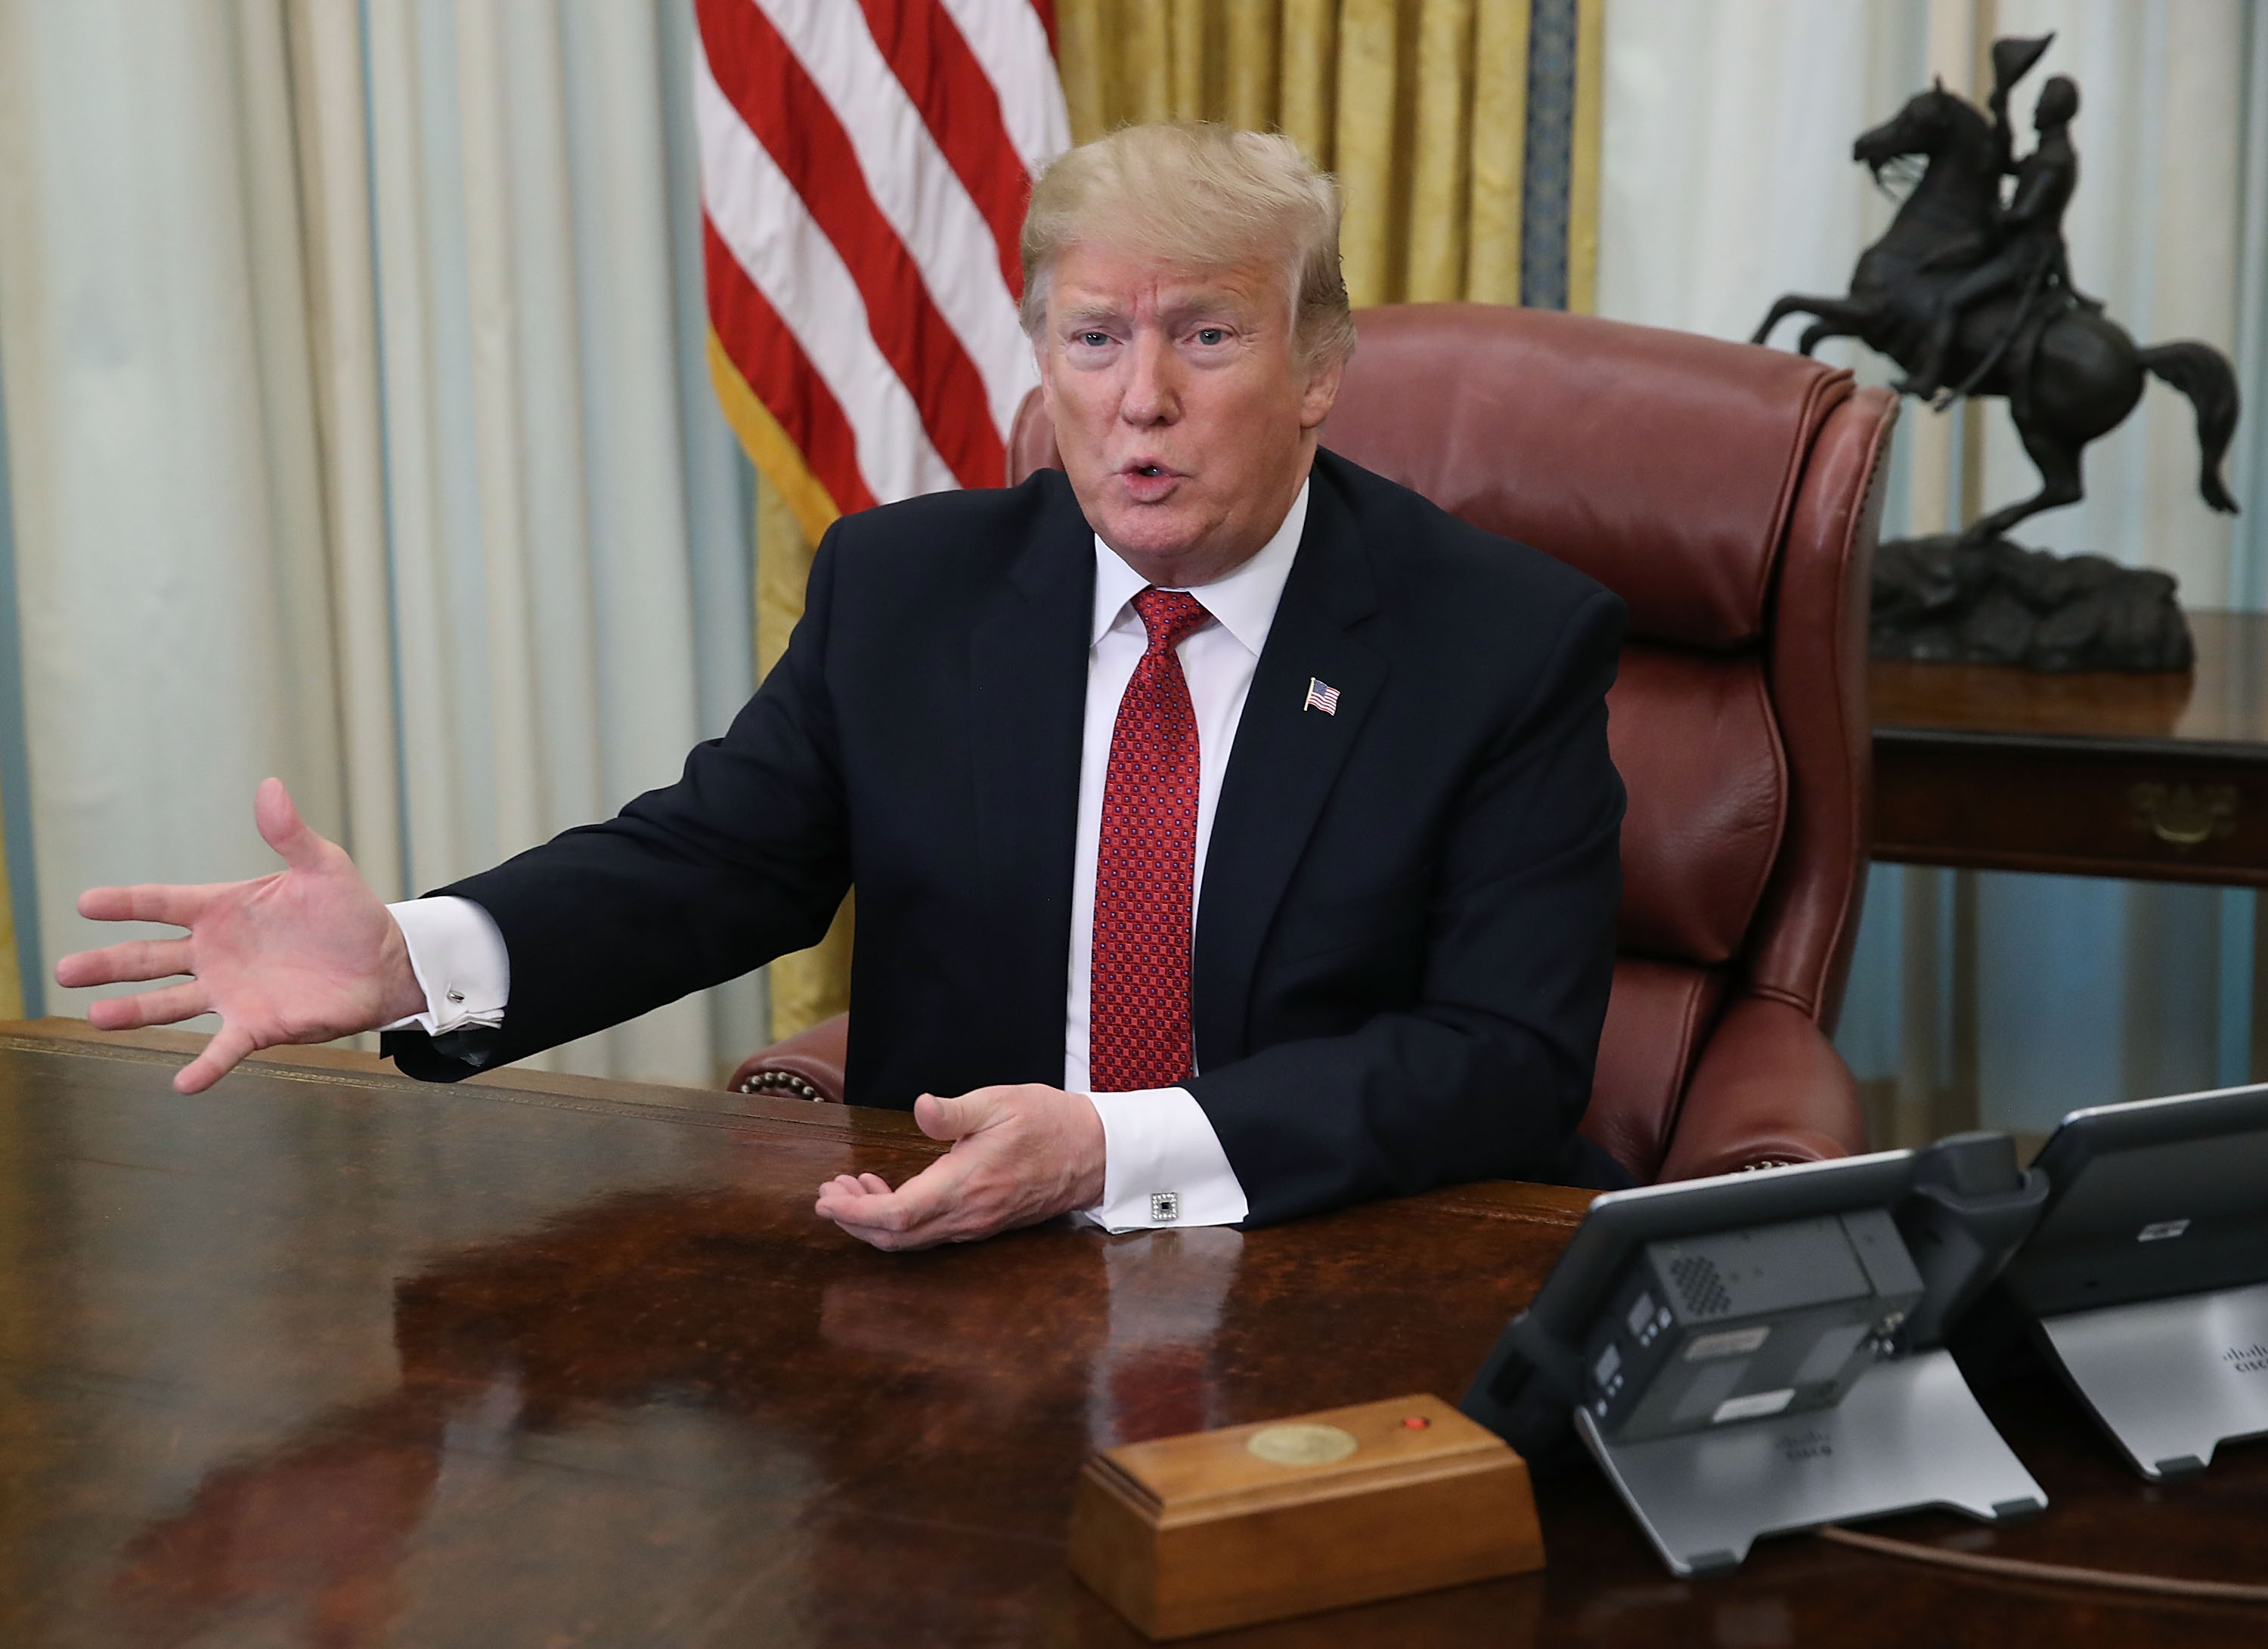 U.S. President Donald Trump speaks during a meeting with Chinese Vice Premier Liu He in the Oval Office at the White House on January 31, 2019 in Washington, D.C., the same day he met with his intelligence chiefs